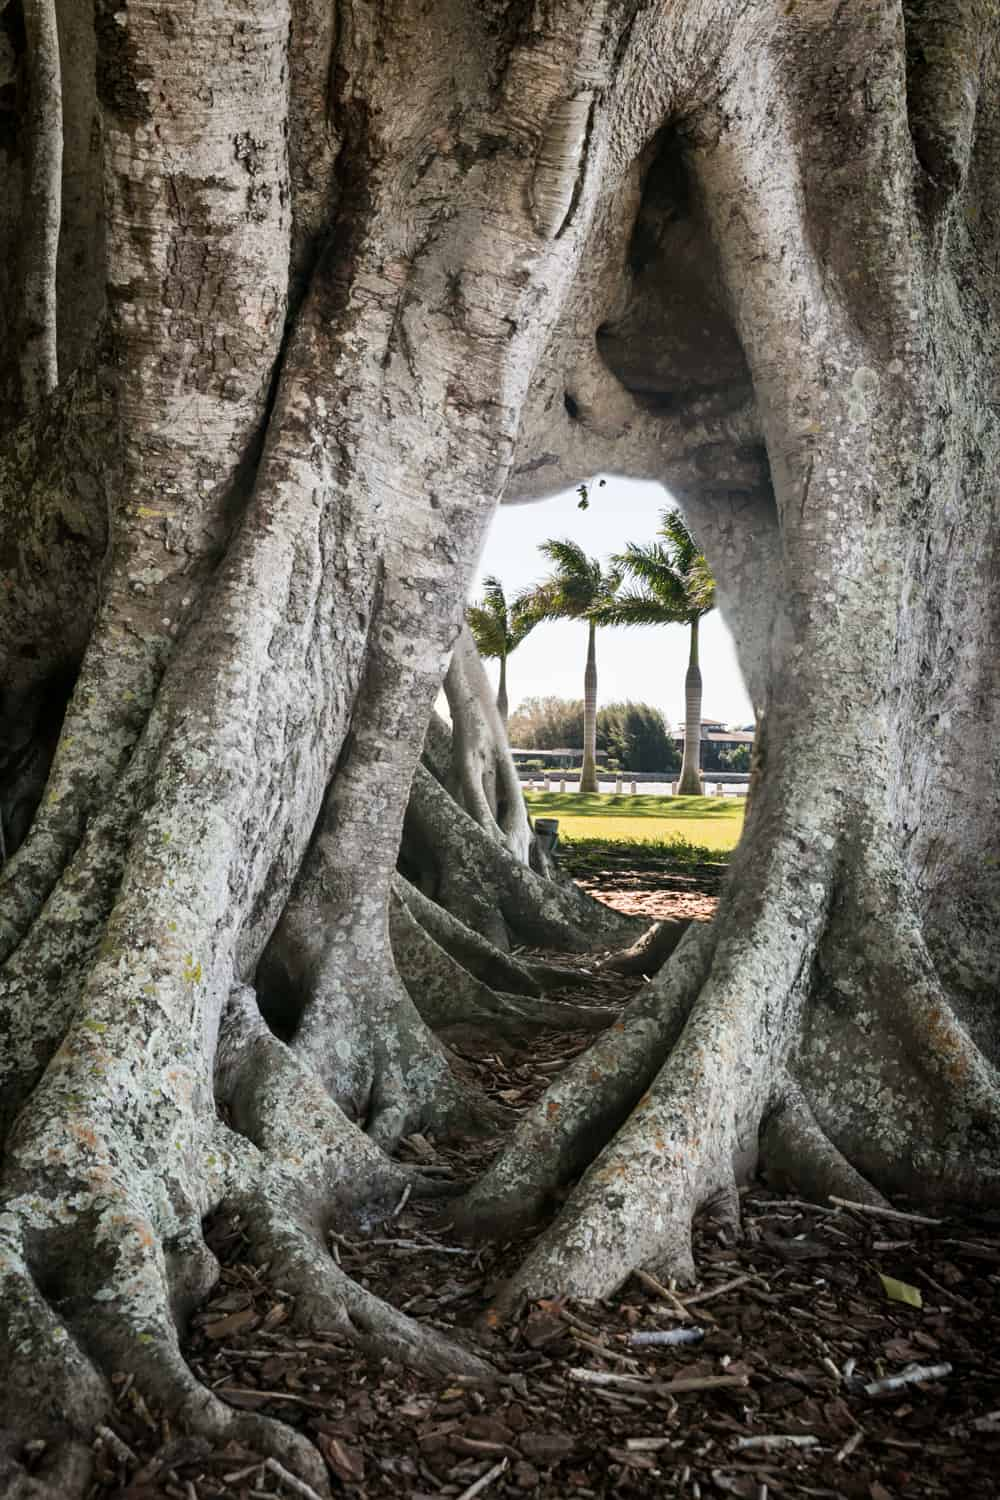 View of palm trees through hole in banyan tree in Sarasota